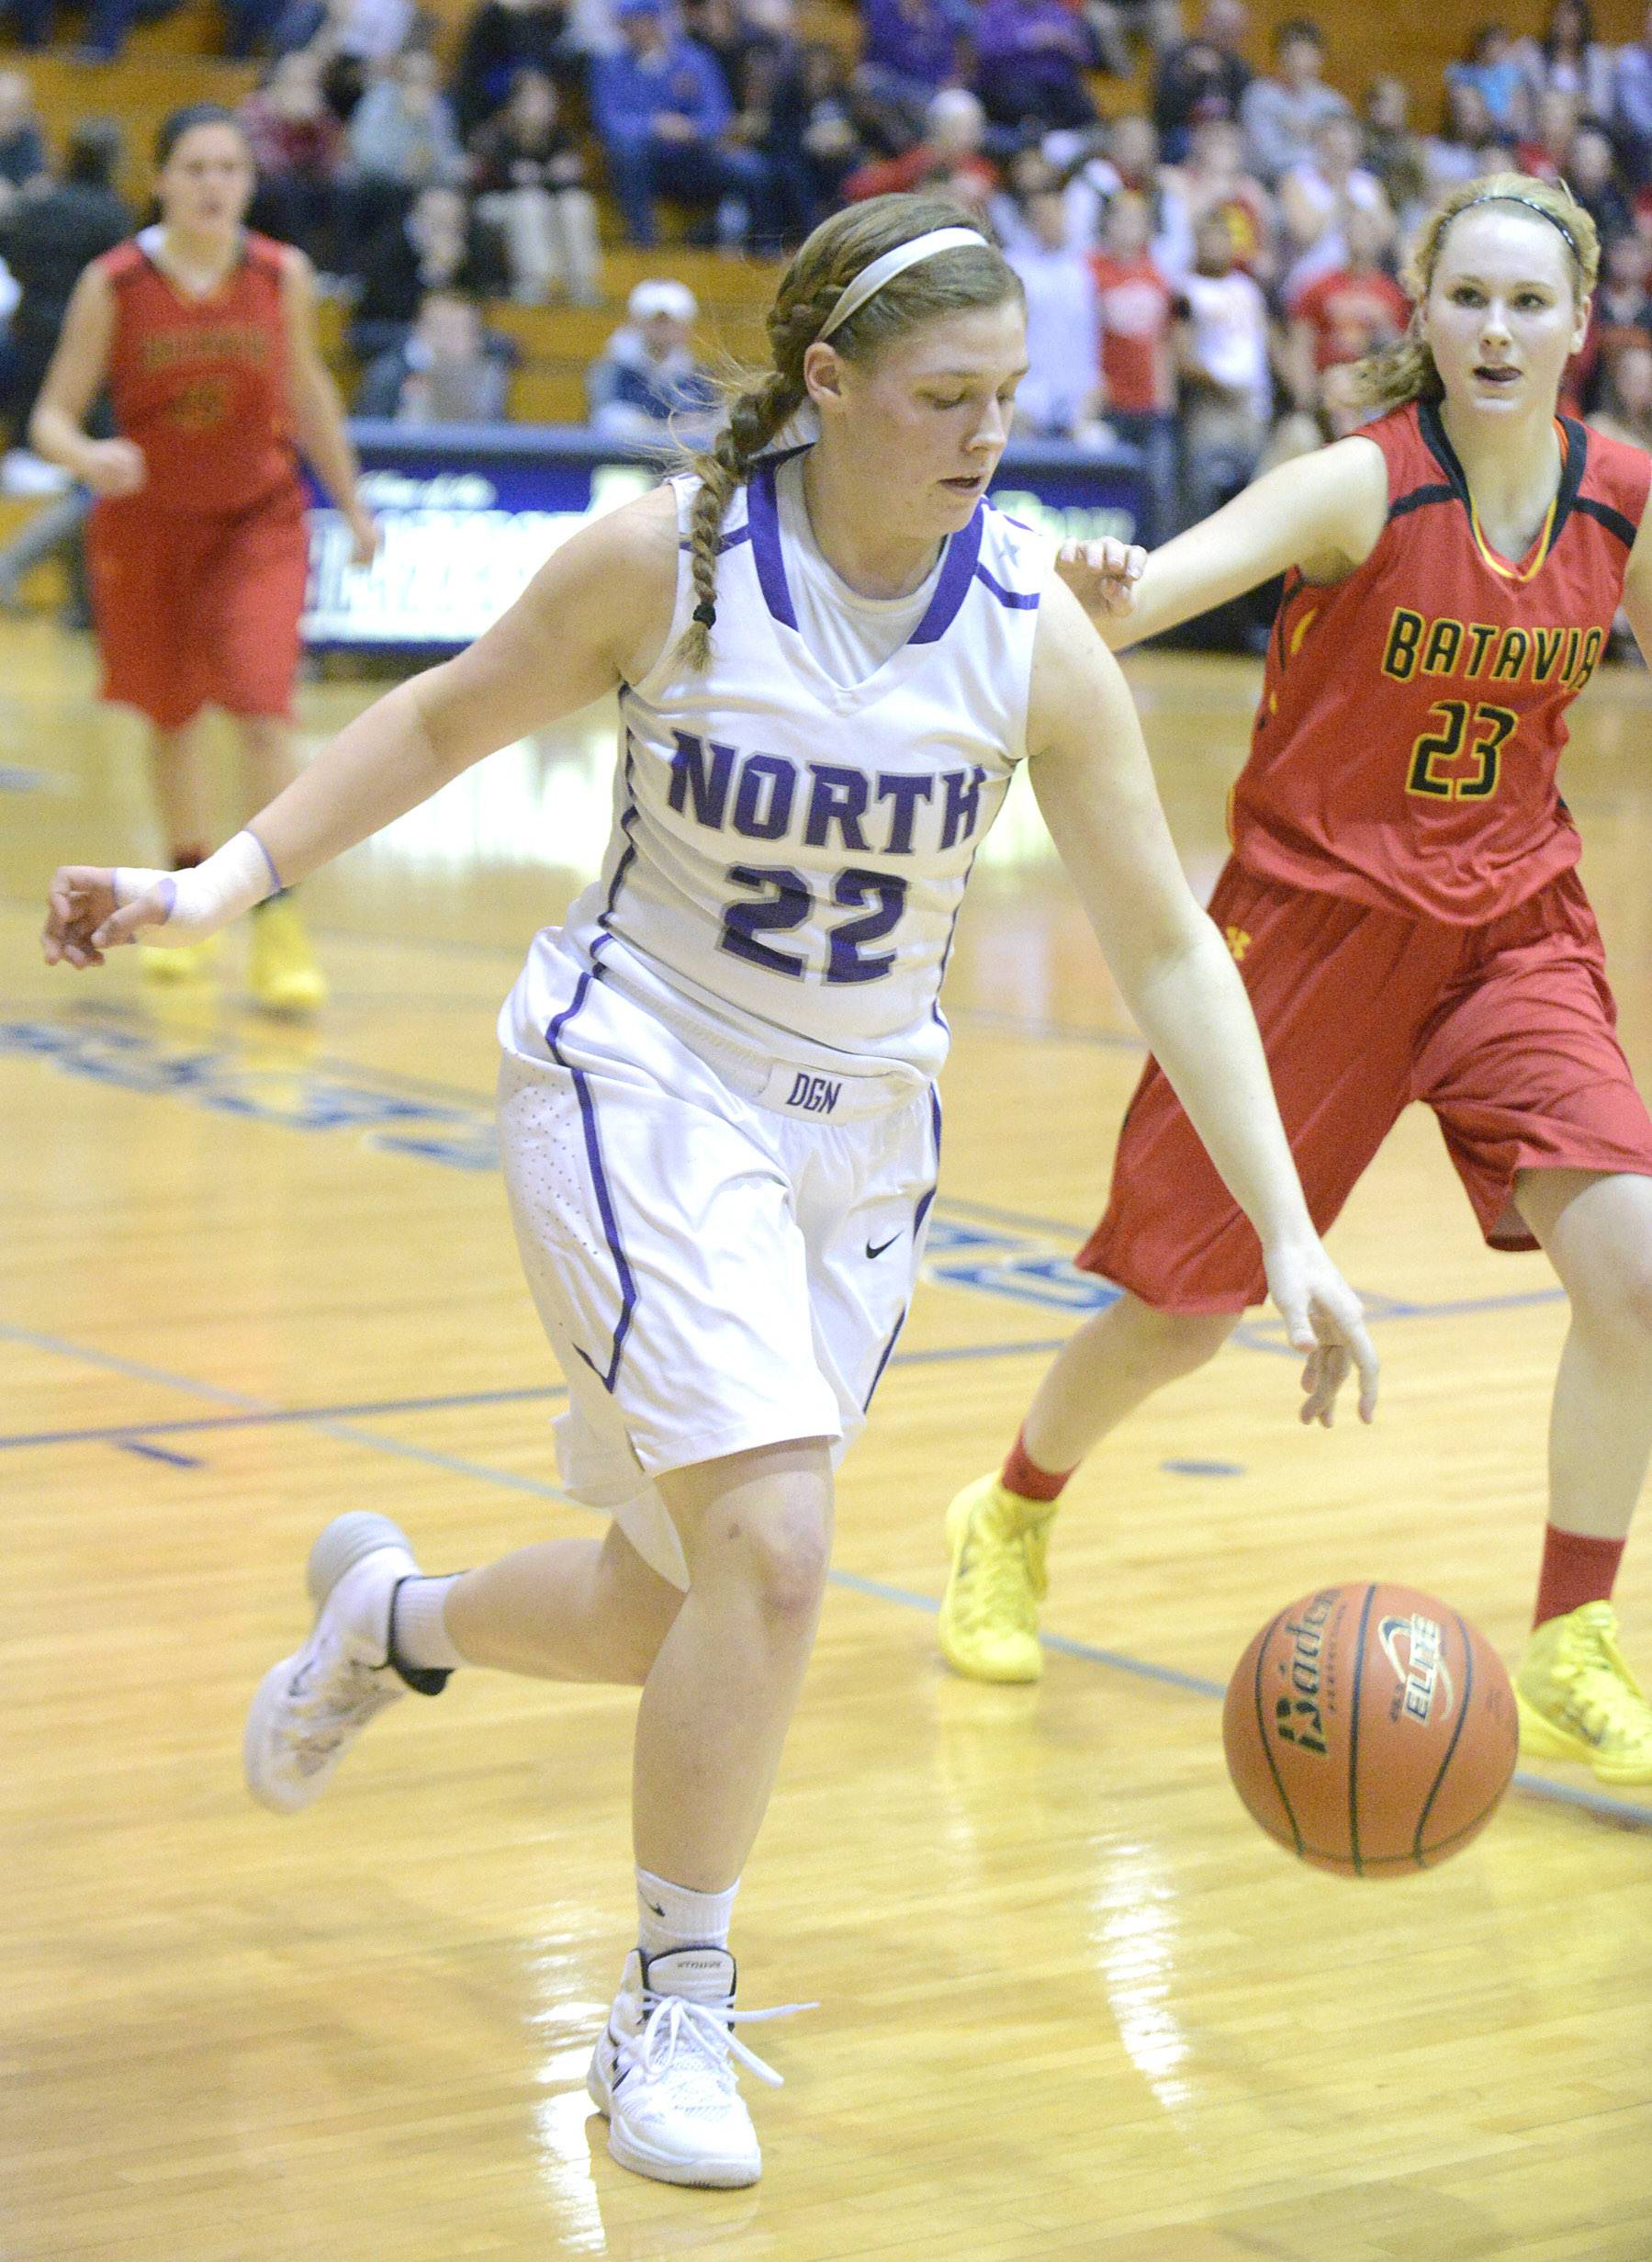 Downers Grove North's Colleen Honn drives the ball past Batavia's Shea Bayram in the third quarter .